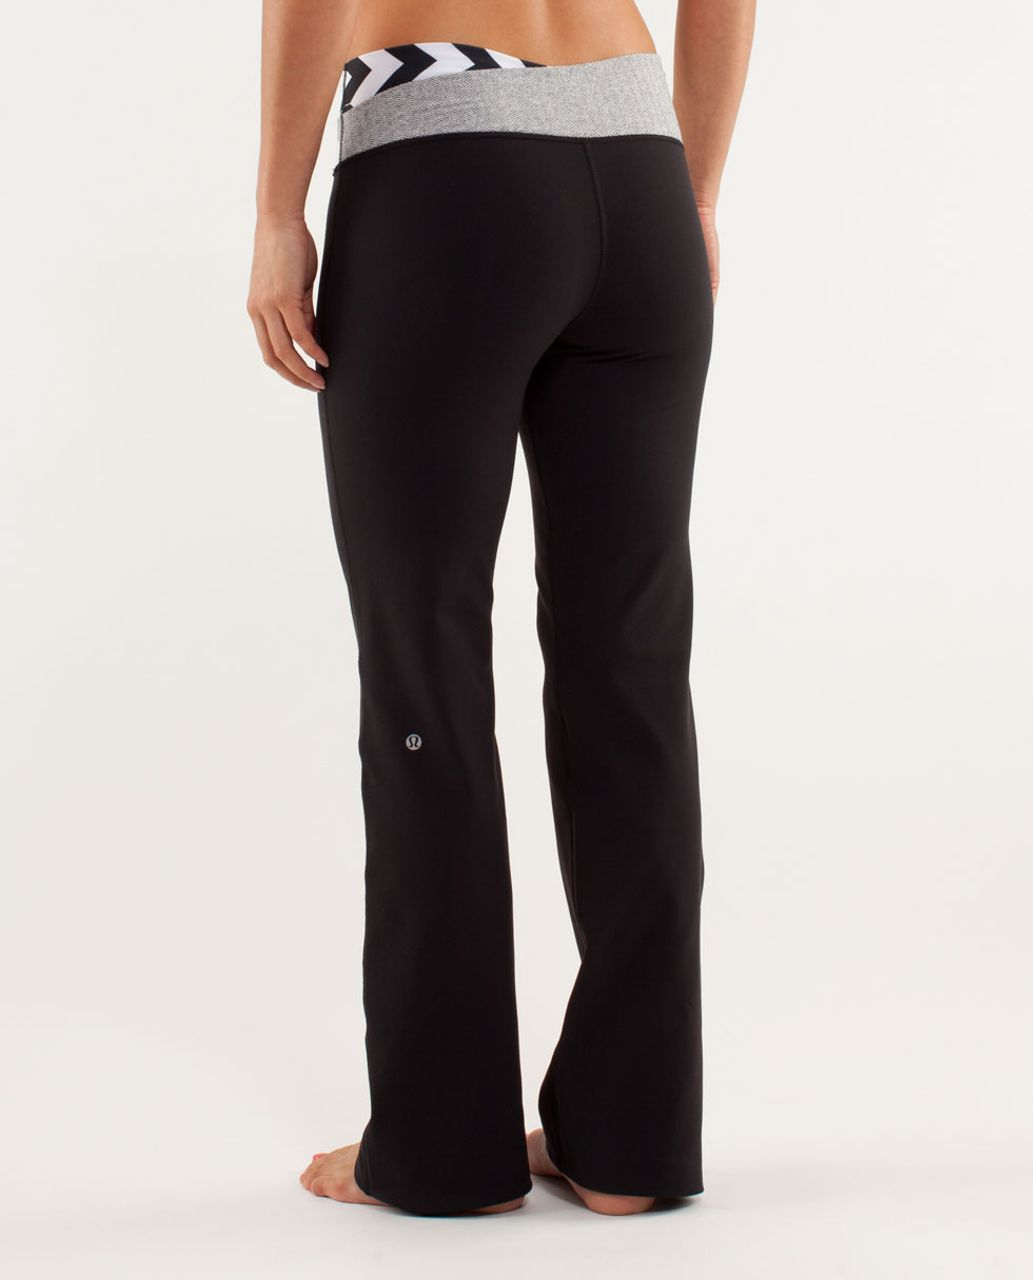 Lululemon Astro Pant (Regular) - Black / Arrow Chevron White Black / Herringbone White Black